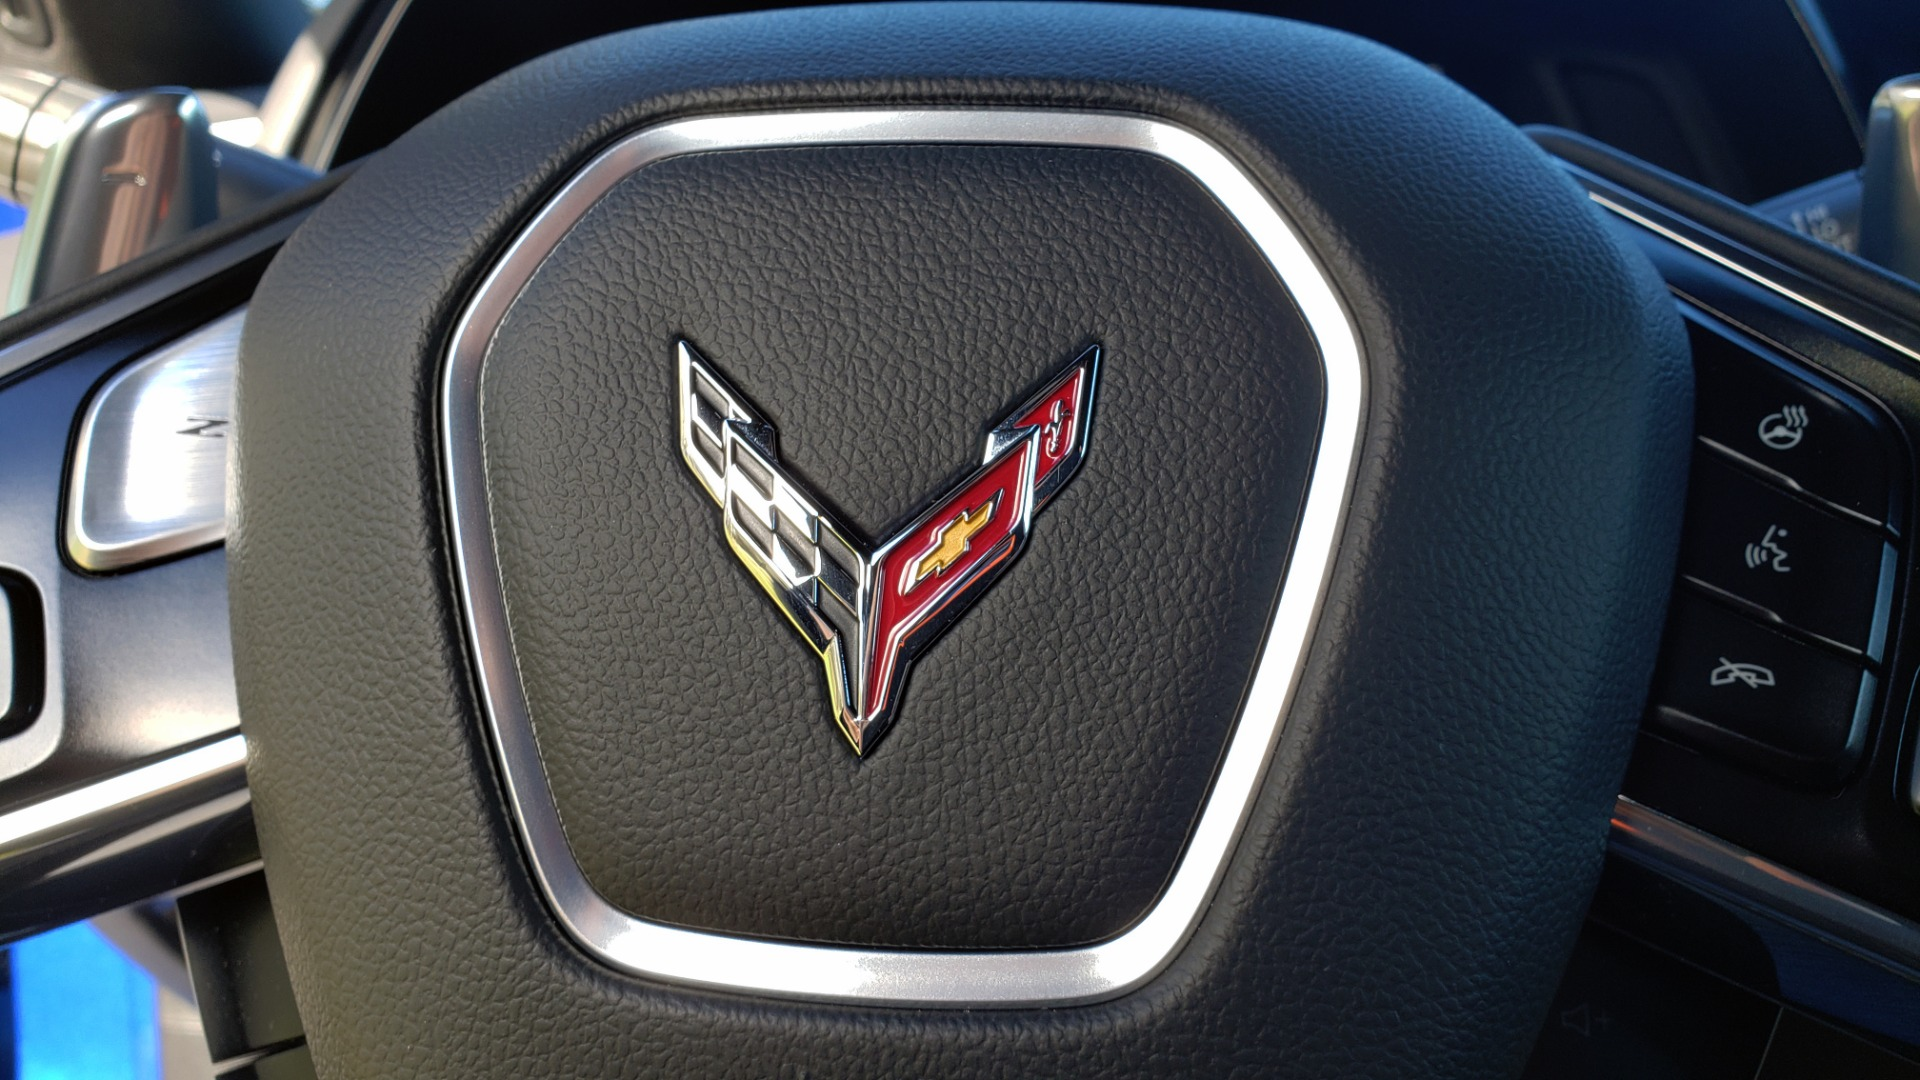 Used 2020 Chevrolet C8 CORVETTE STINGRAY 2LT COUPE / NAV / HUD / BOSE / GT2 SEATS / FRONT LIFT / REARVIEW for sale $98,999 at Formula Imports in Charlotte NC 28227 77